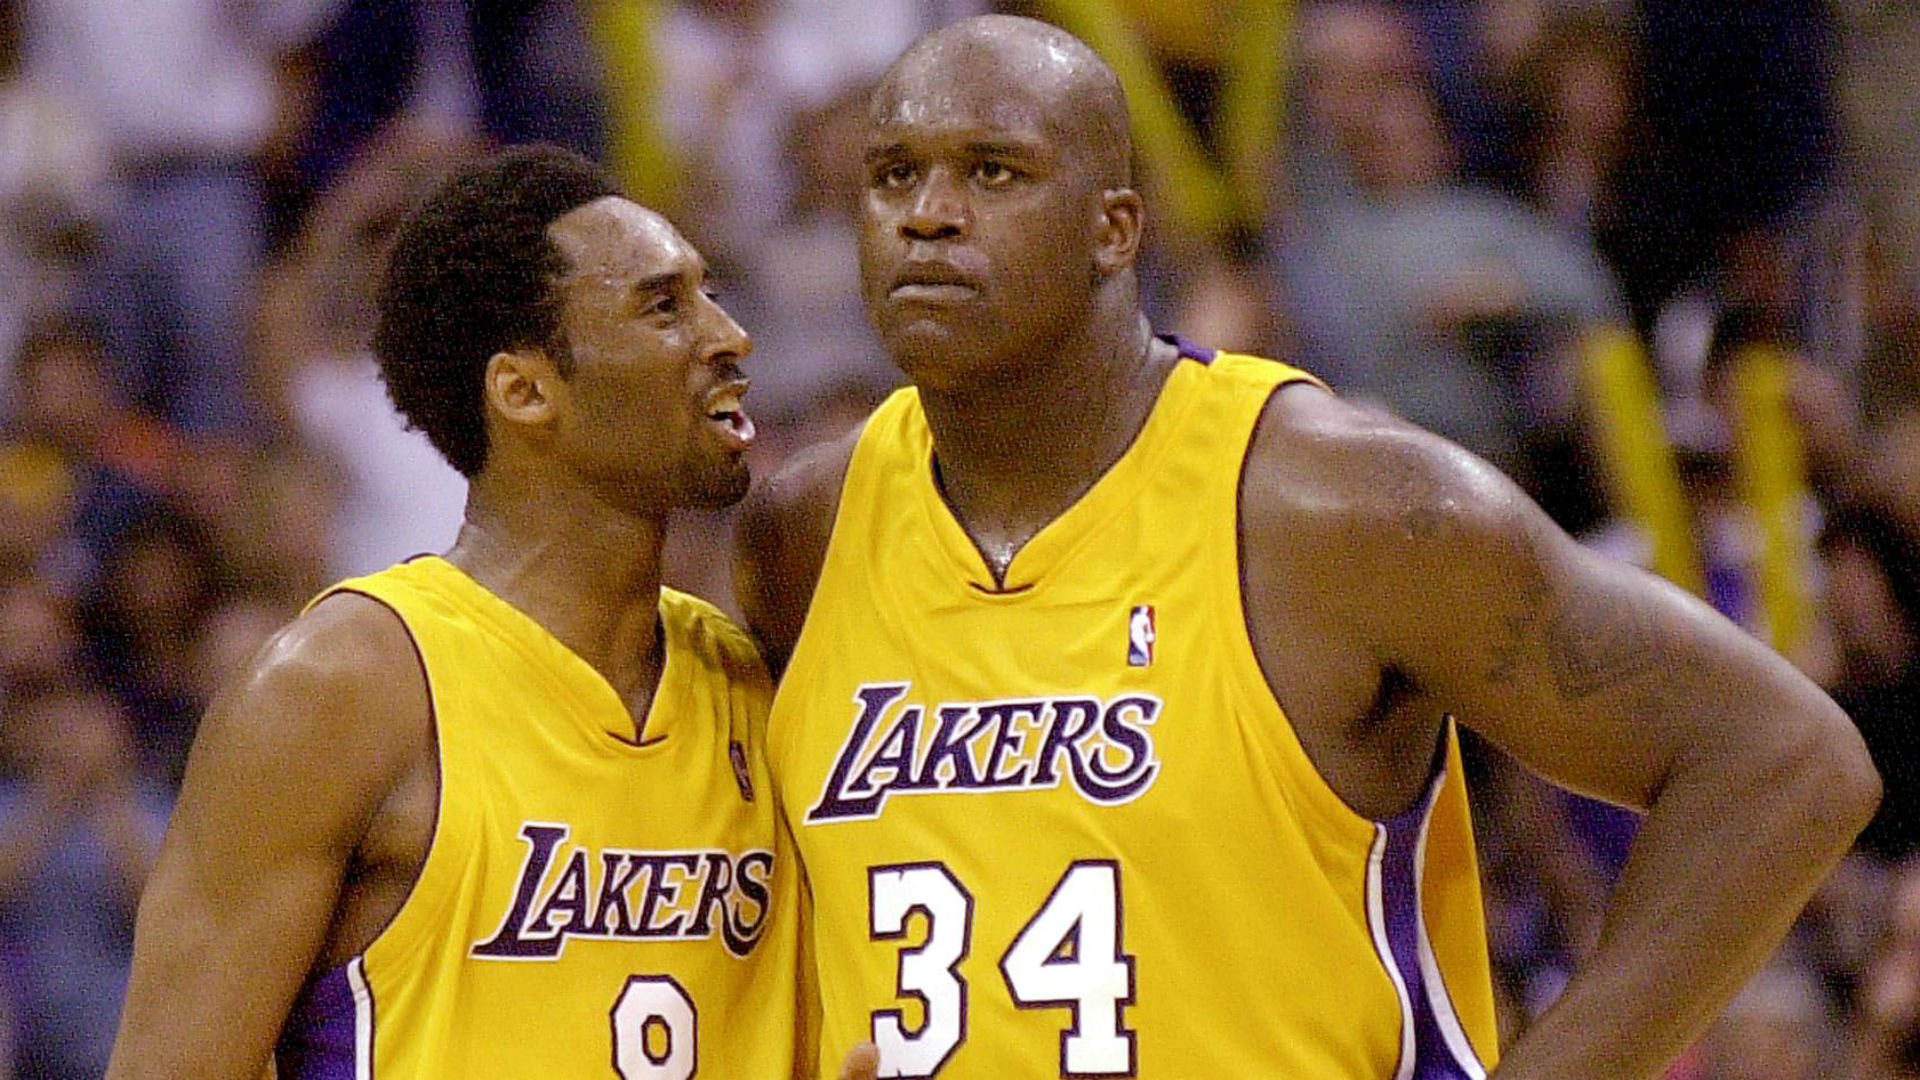 kobe-shaq-52615-us-news-getty-ftr_gpre24dozx821711919xlo03x.jpg